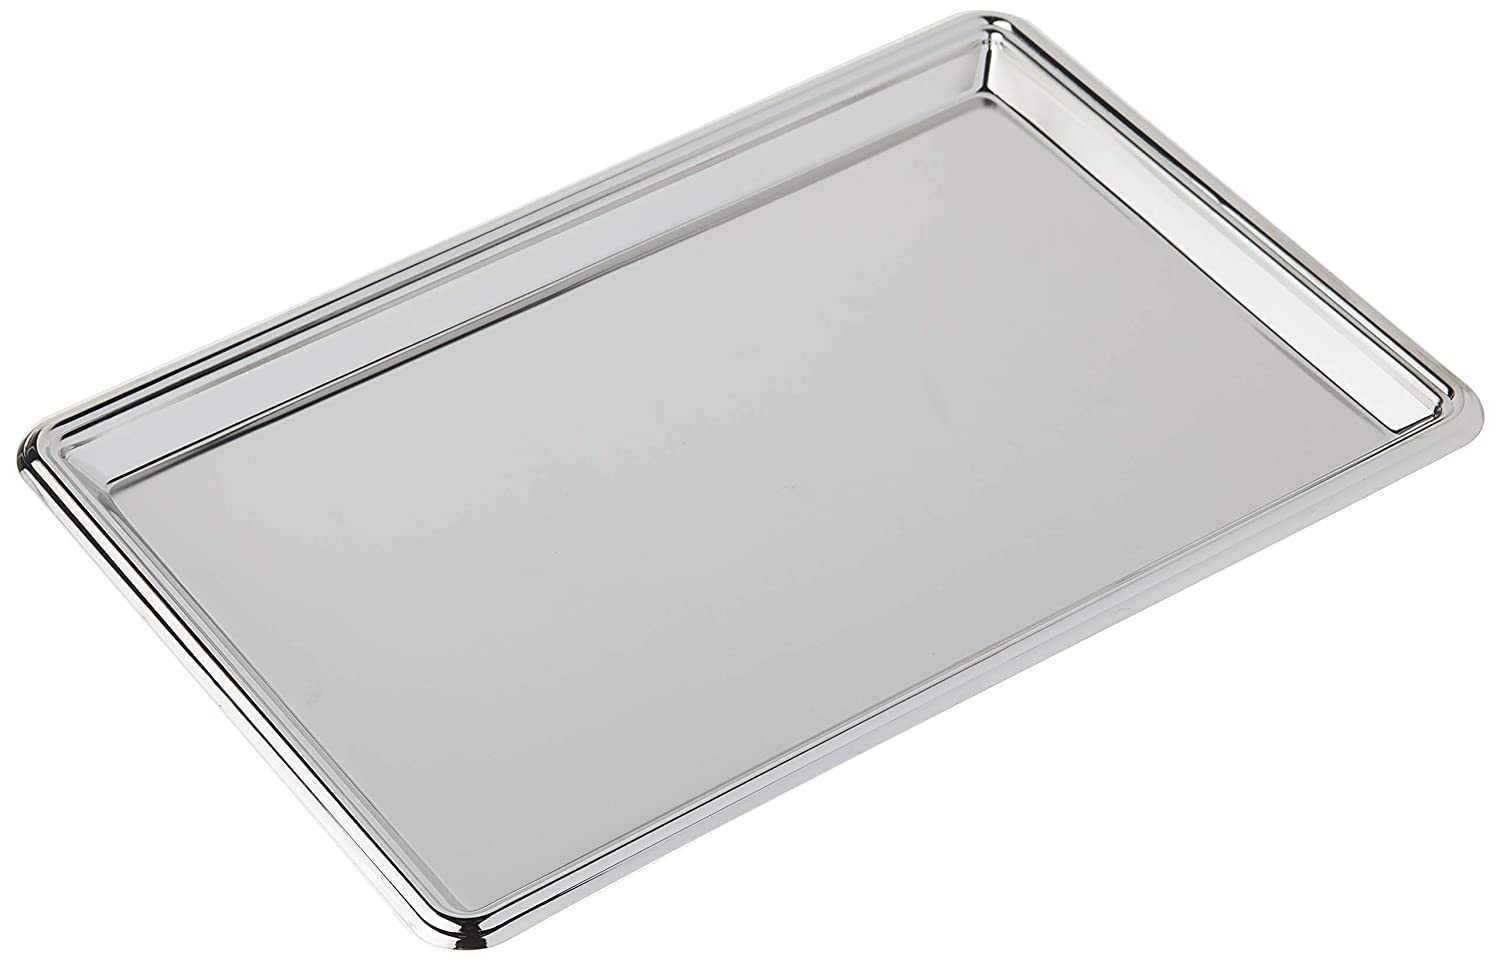 Elegance Silver 82533 Rectangular Nickel Plated Serving Tray, 8